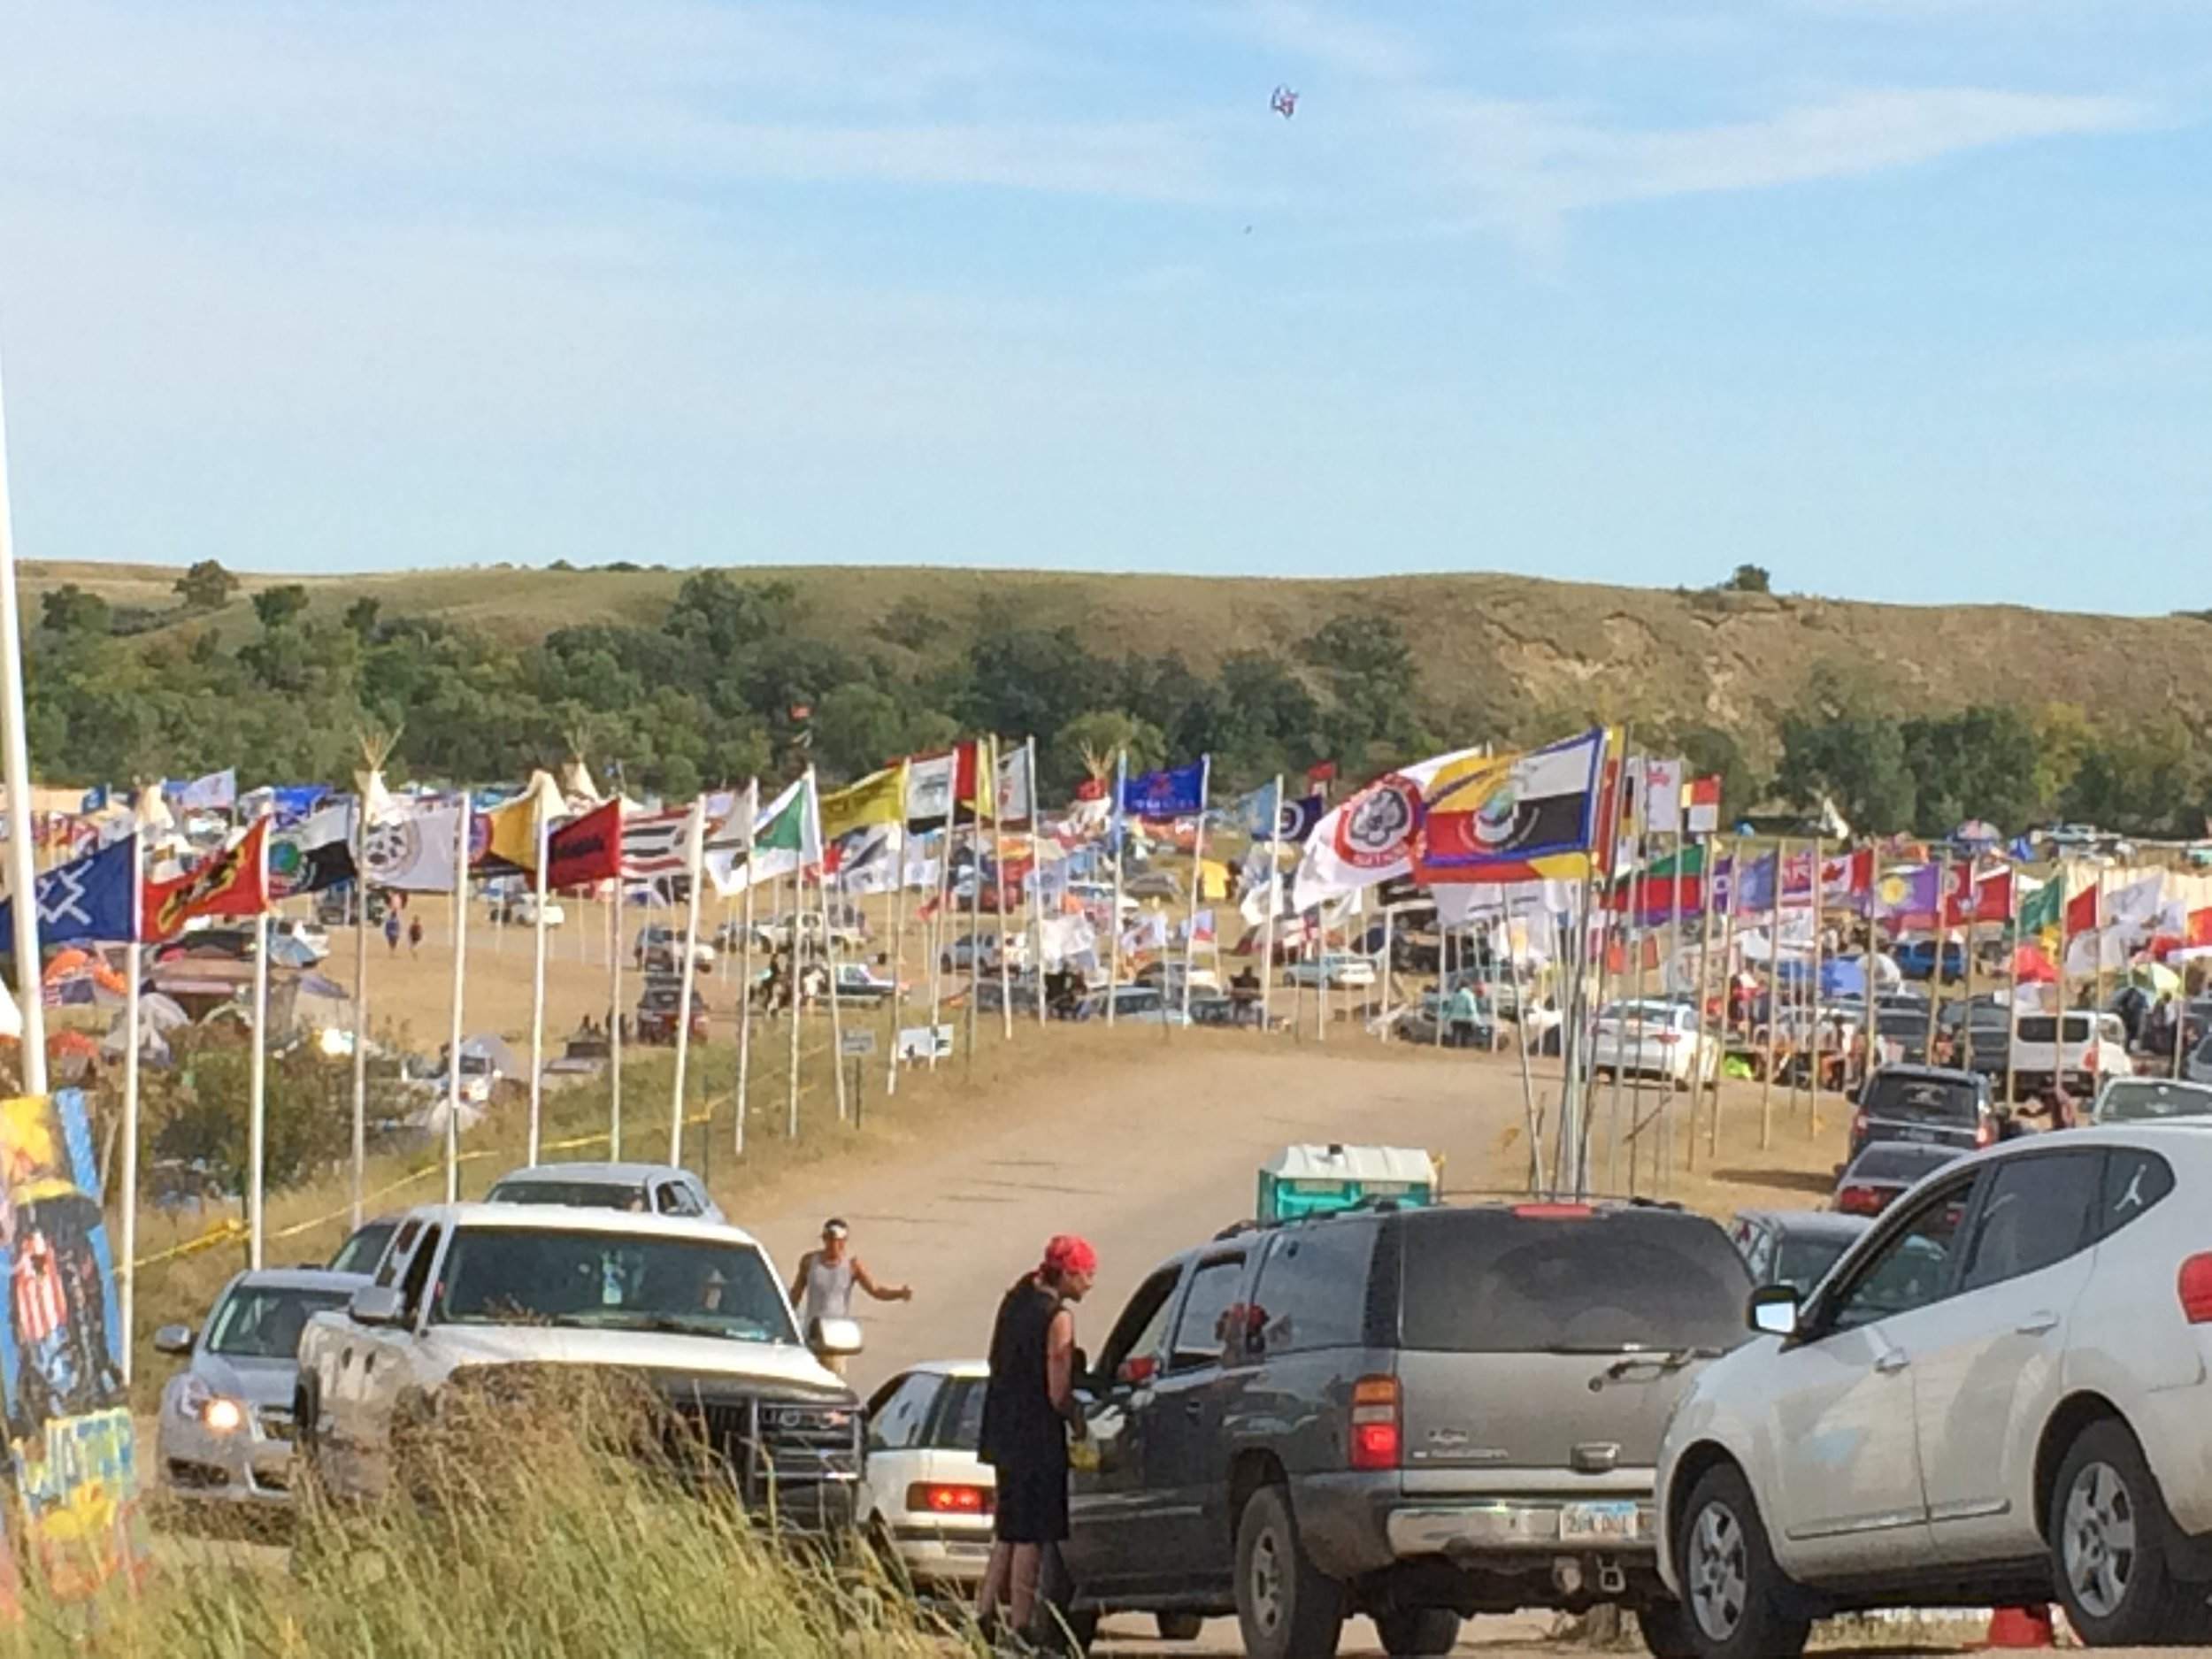 Arriving at Oceti Sakowin Camp in September.